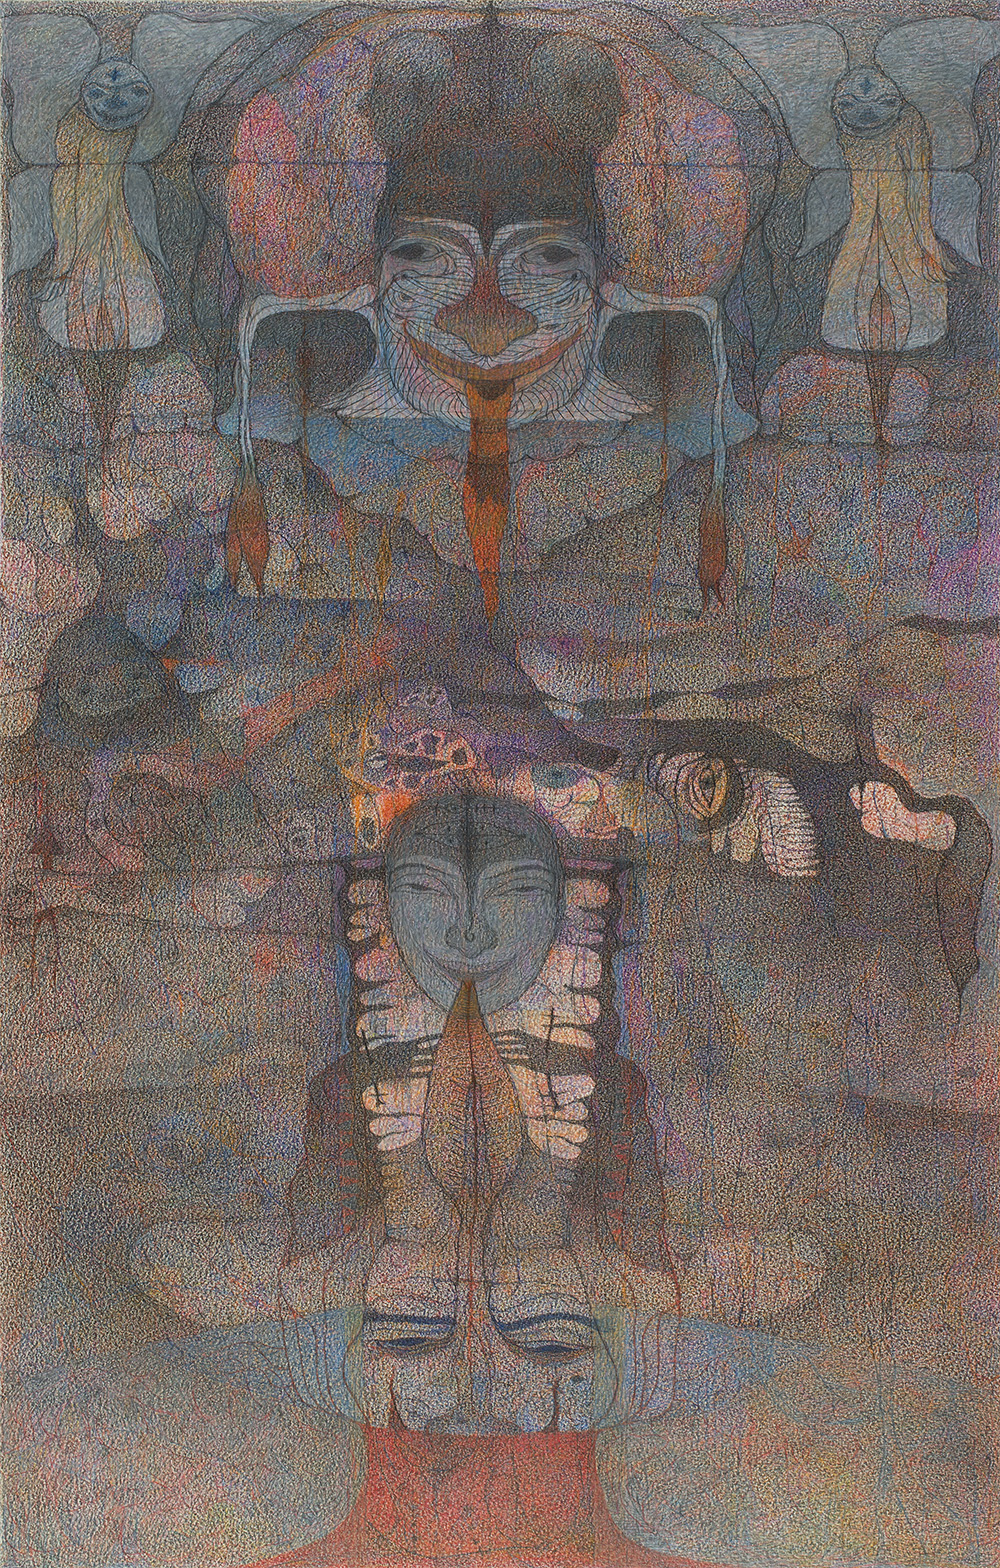 M'onma,    Untitled  , 2004, Color pencil on paper, 27.56 x 17.6 inches, 70 x 44.7 cm, IMo 63